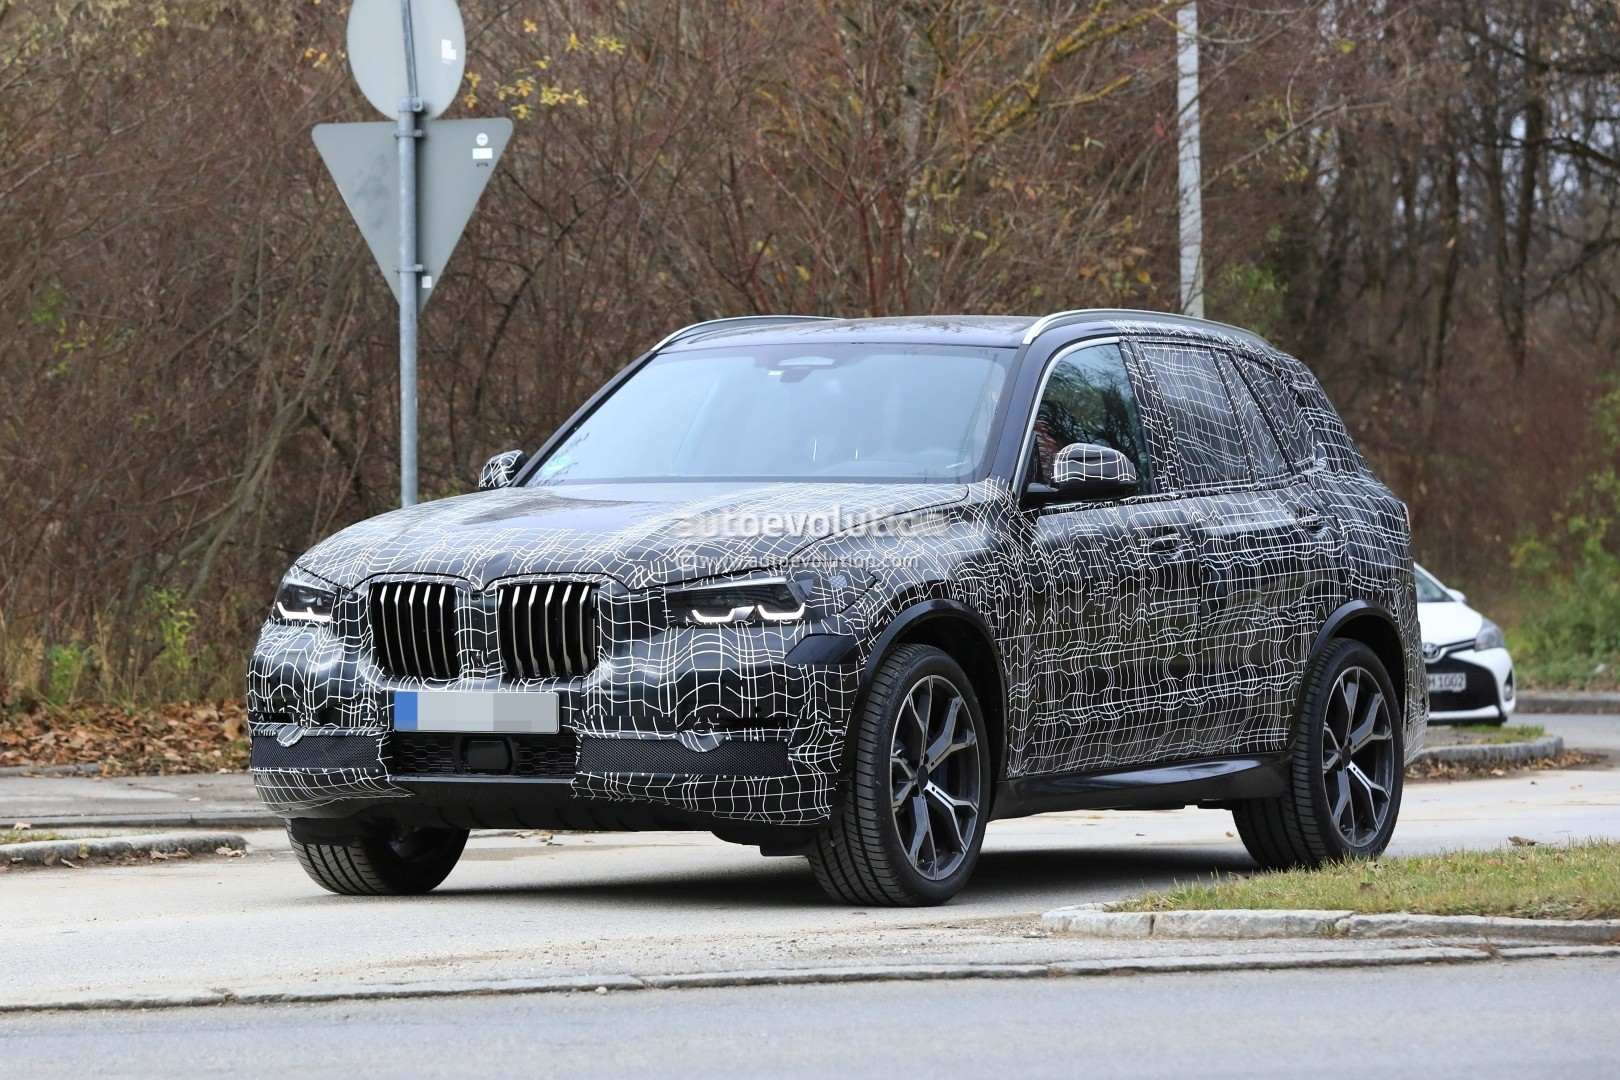 2019 bmw x5 spied in germany shows sporty stance. Black Bedroom Furniture Sets. Home Design Ideas